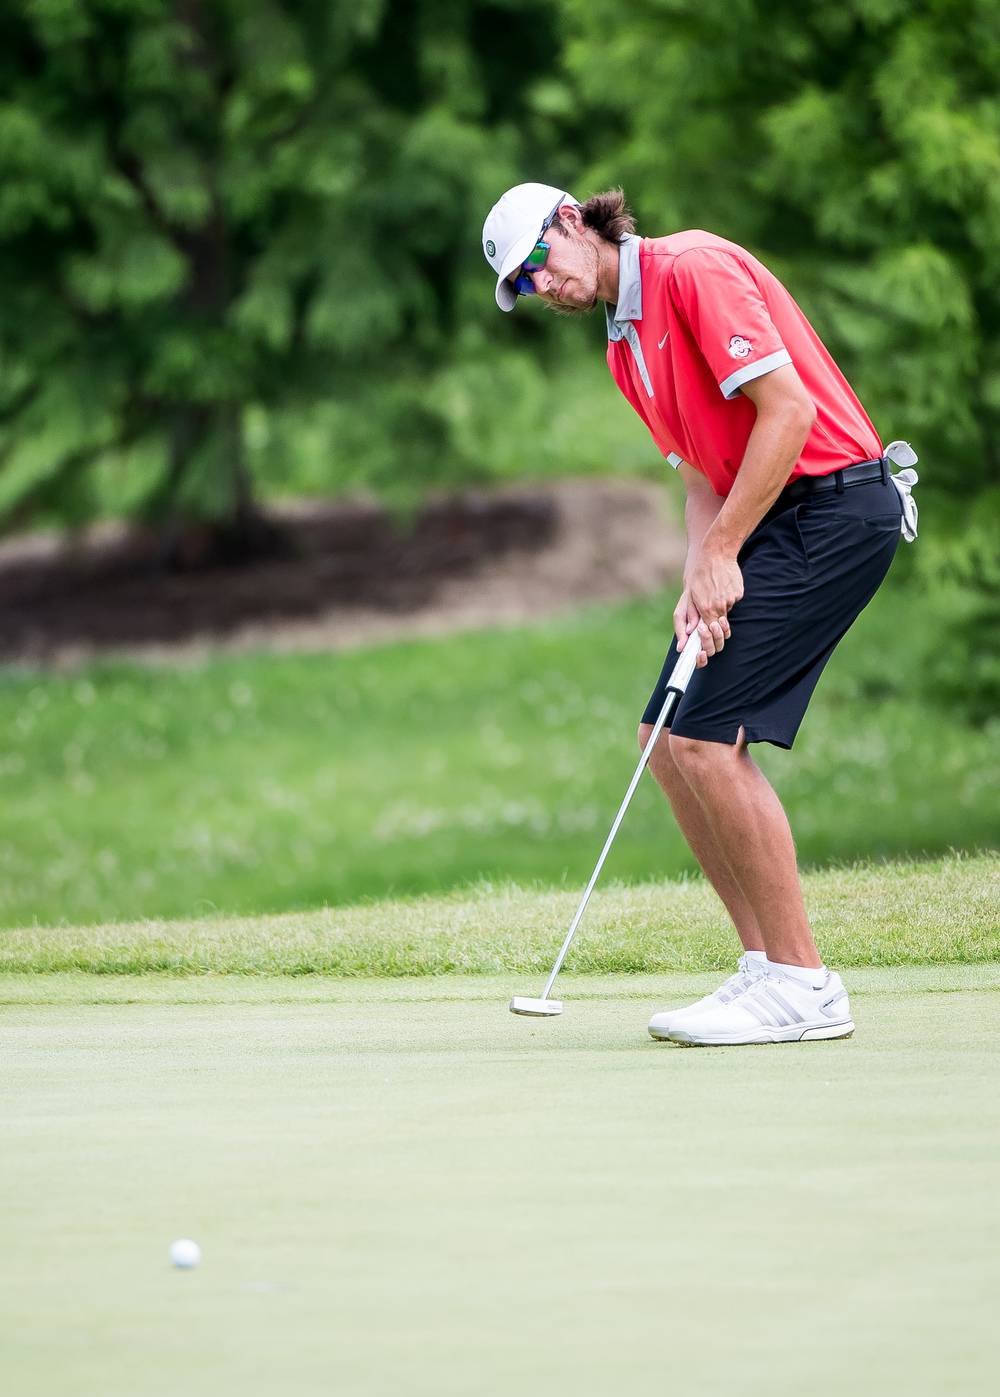 Tee-K Kelly reacts as his putt just misses the cup on the No. 2 hole during the 85th Illinois State Amateur Championship at Panther Creek Country Club, Thursday, July 16, 2015, in Springfield, Ill. Justin L. Fowler/The State Journal-Register